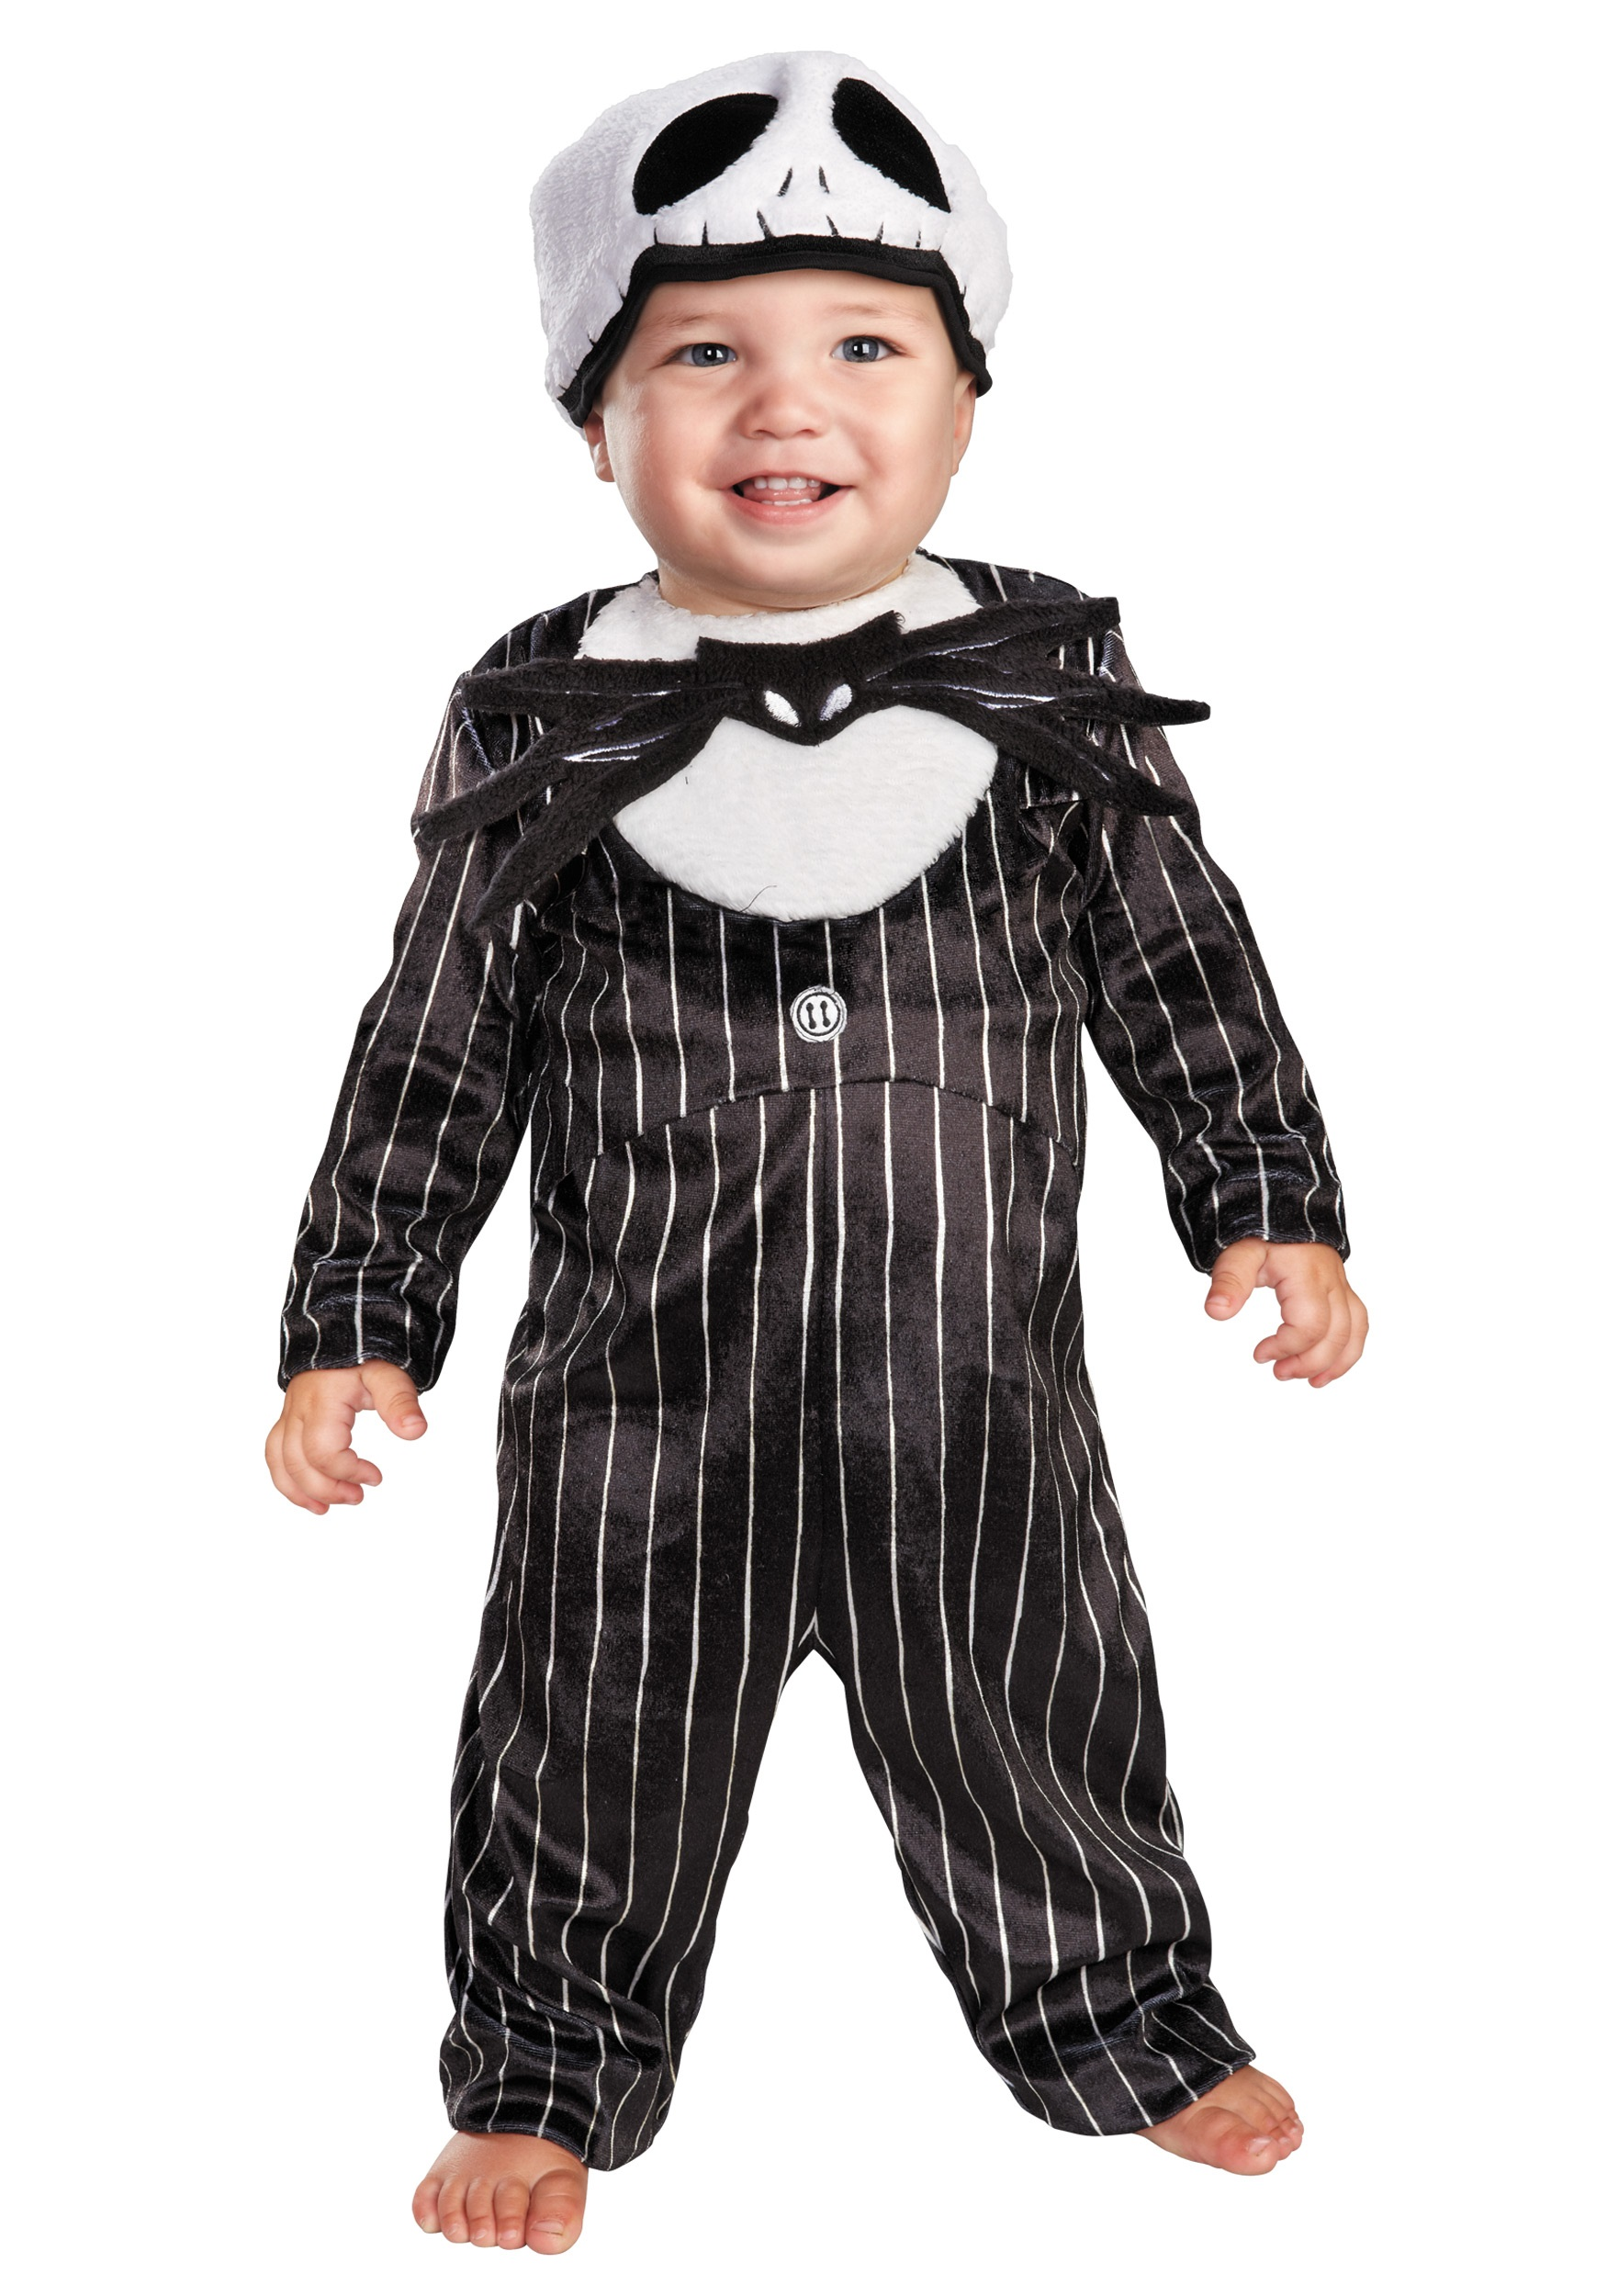 Prestige Infant Jack Skellington Costume  sc 1 st  Halloween Costumes & Prestige Infant Jack Skellington Costume - Halloween Costumes